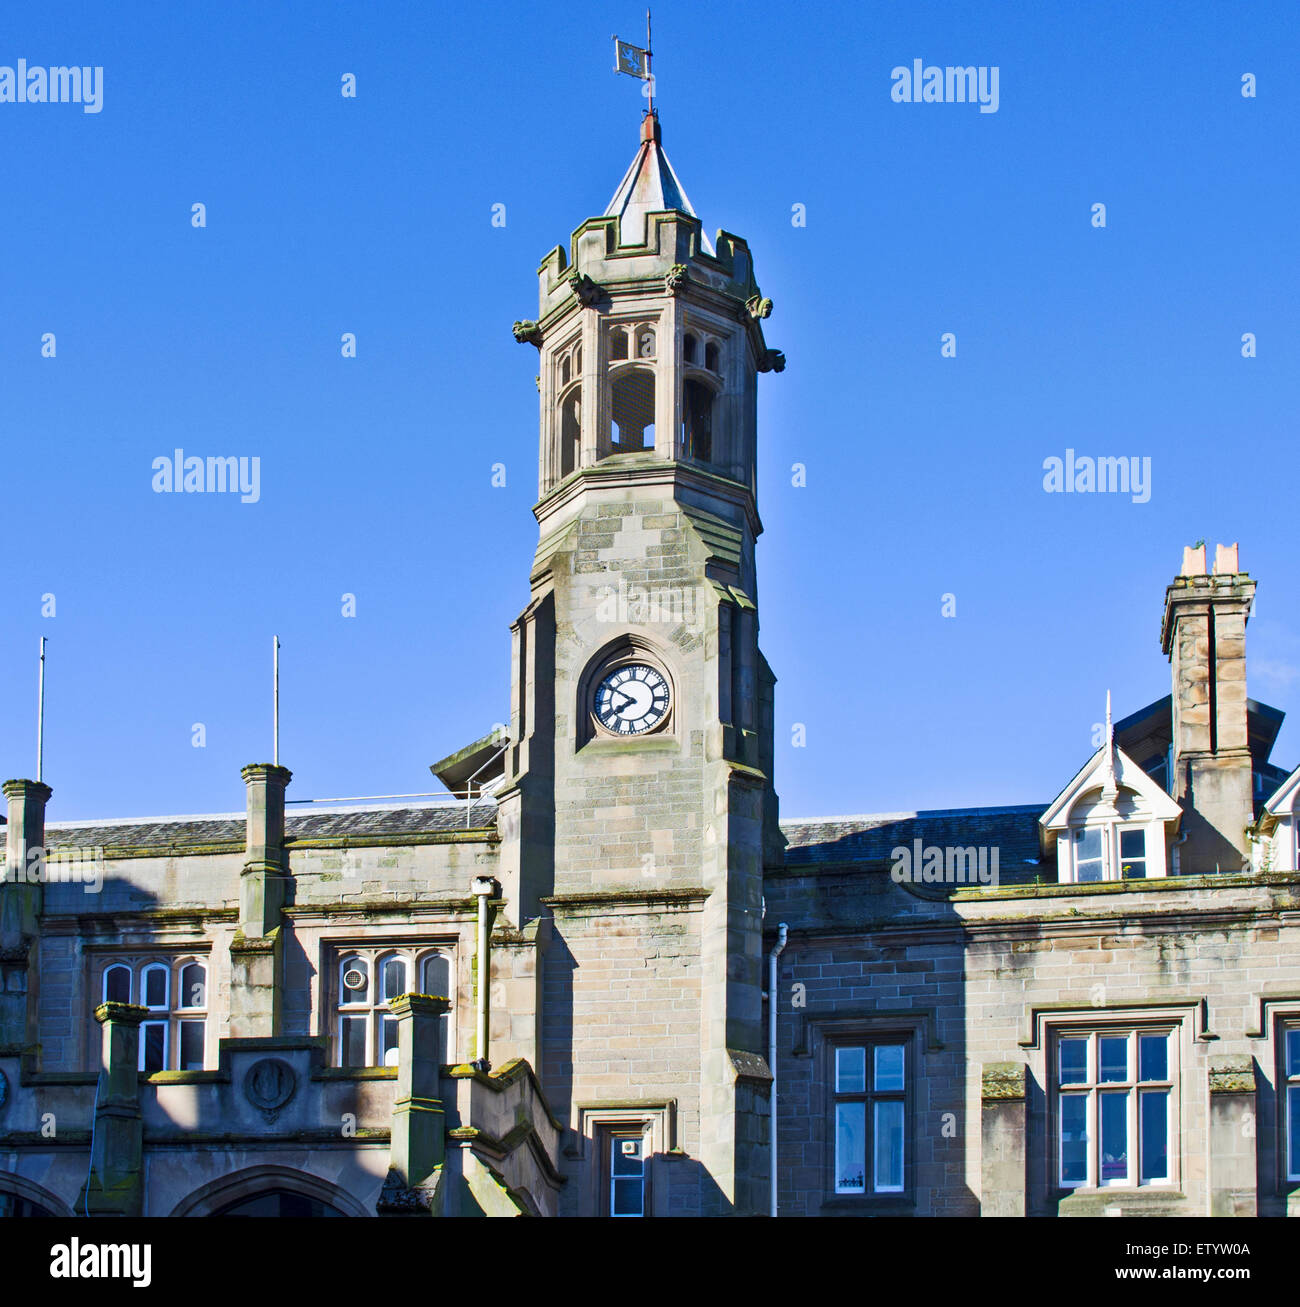 Detail of exterior frontage and Clock Tower of Carlisle city railway station (Citadel station), built 1847 in neo - Stock Image